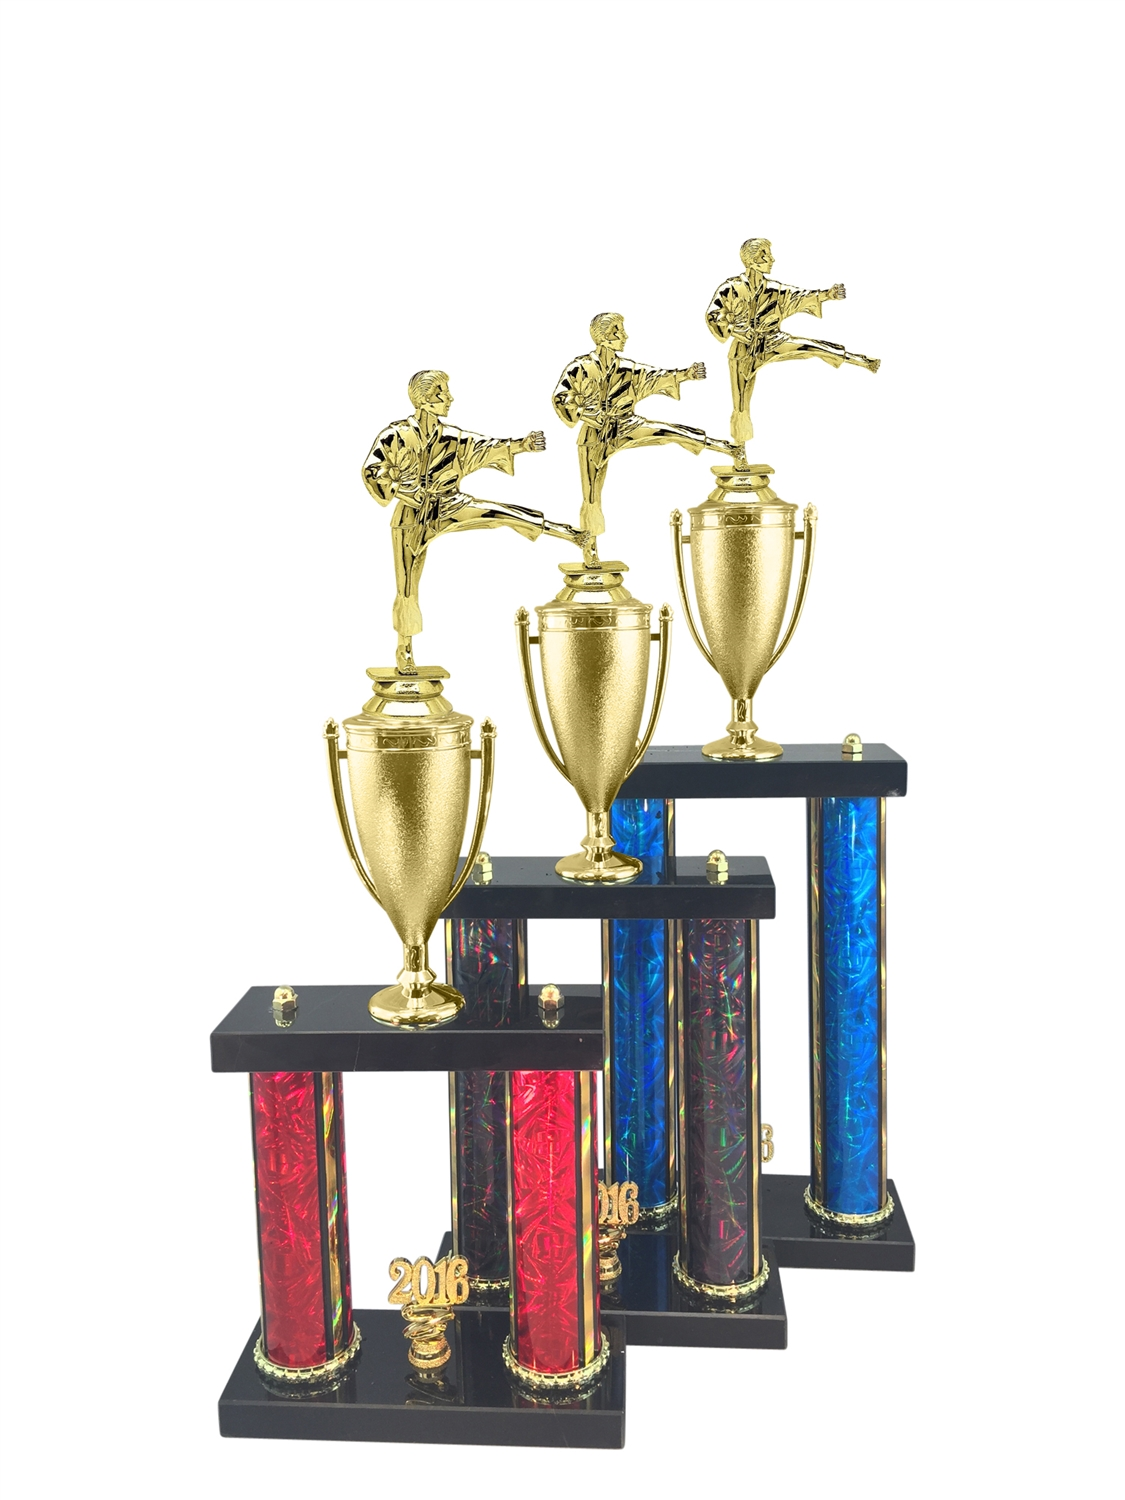 Male Martial Arts Trophy Available in 11 Color & 3 Size Options